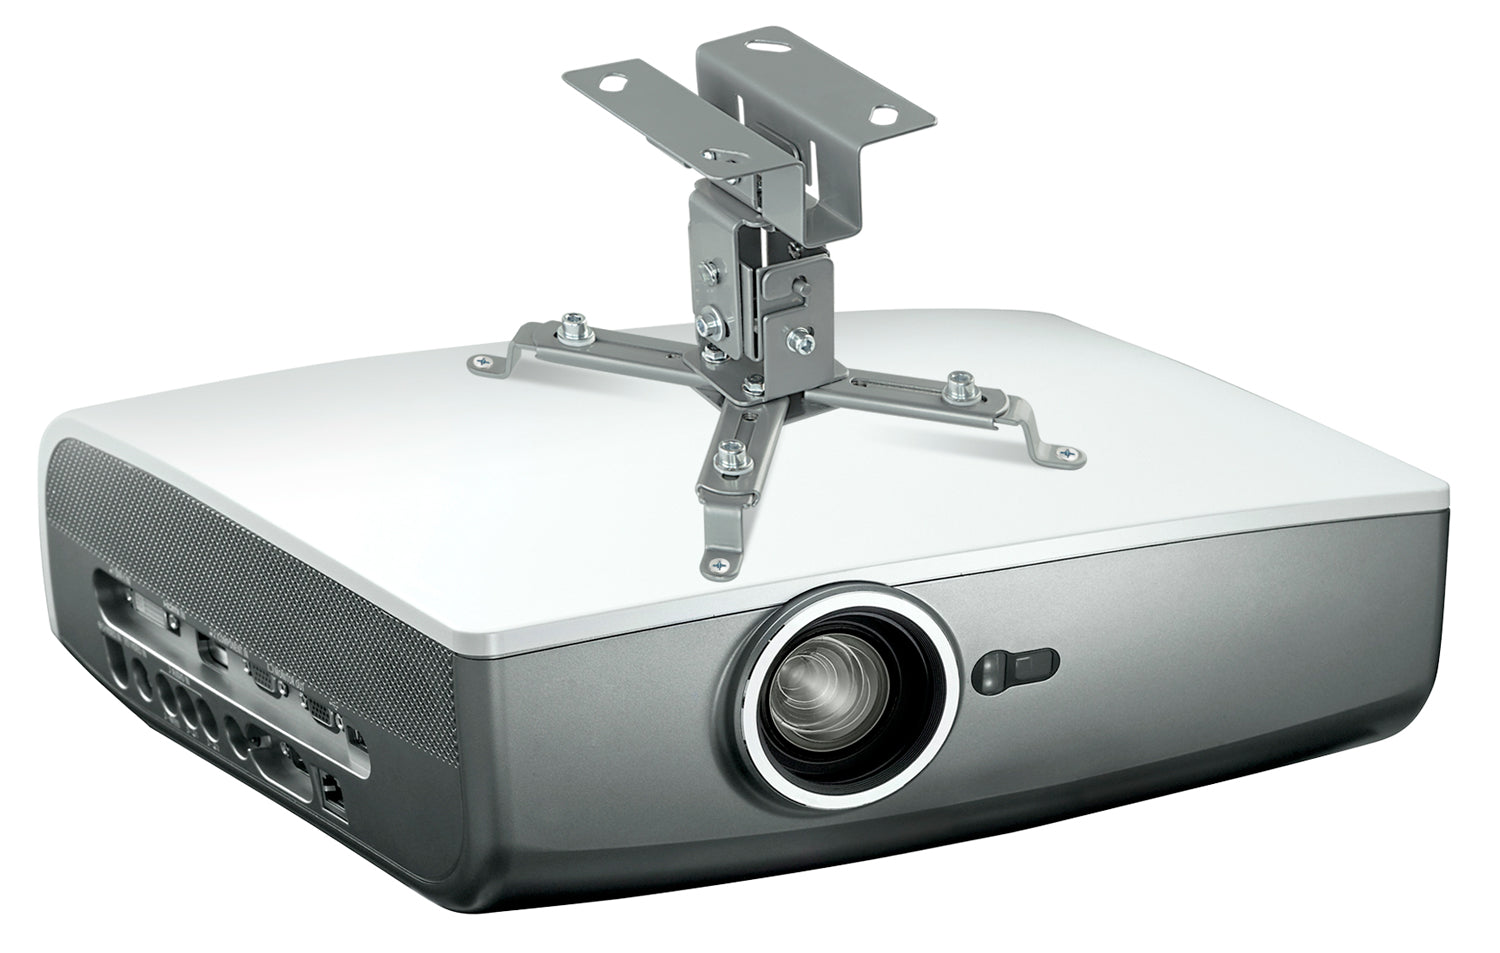 Mount-It! Ceiling Video Projector Mount  - Silver - MI-605